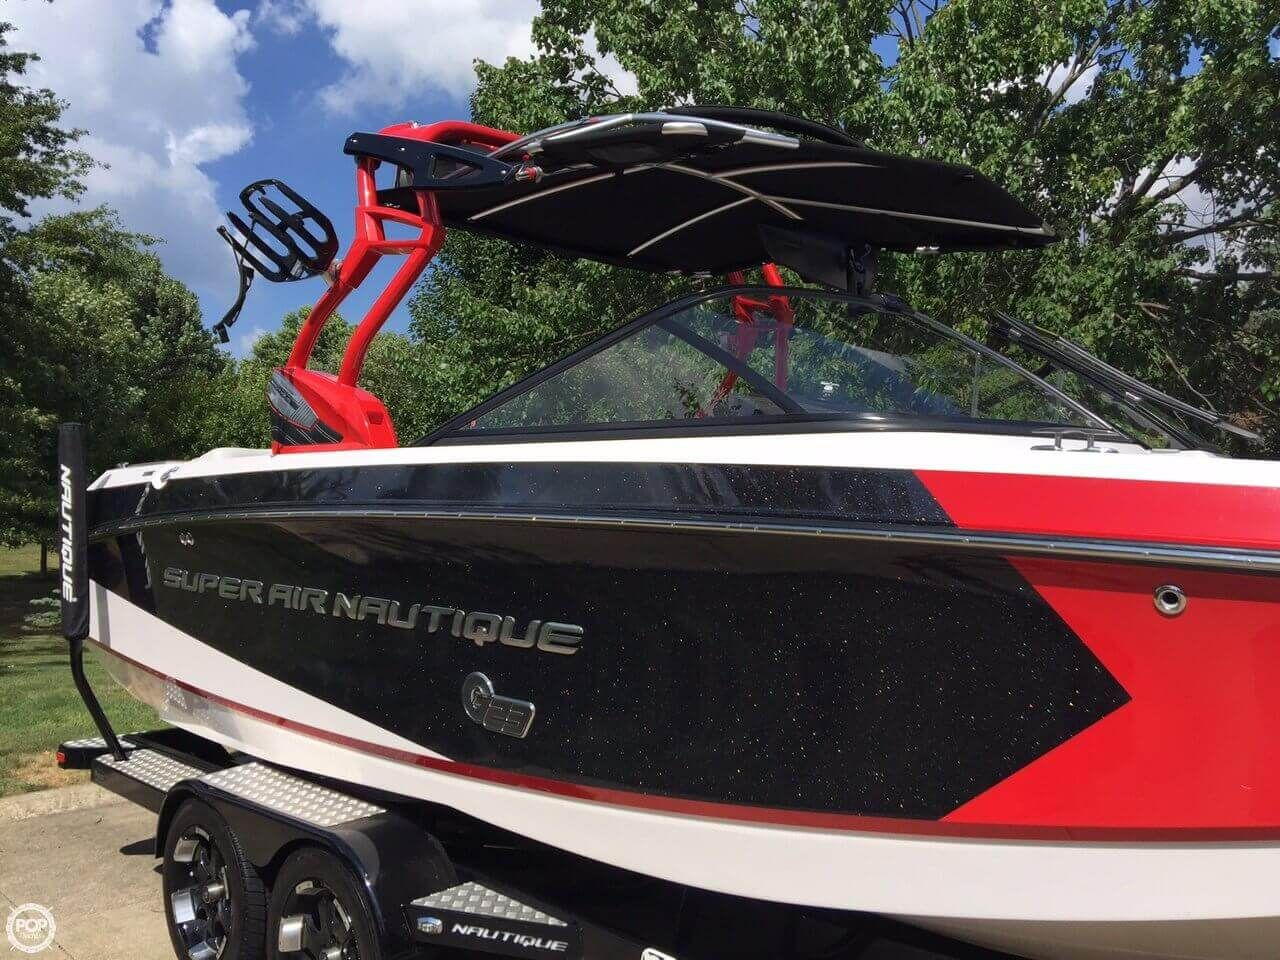 Super Air Nautique G23 Boats for sale, Ski boats for